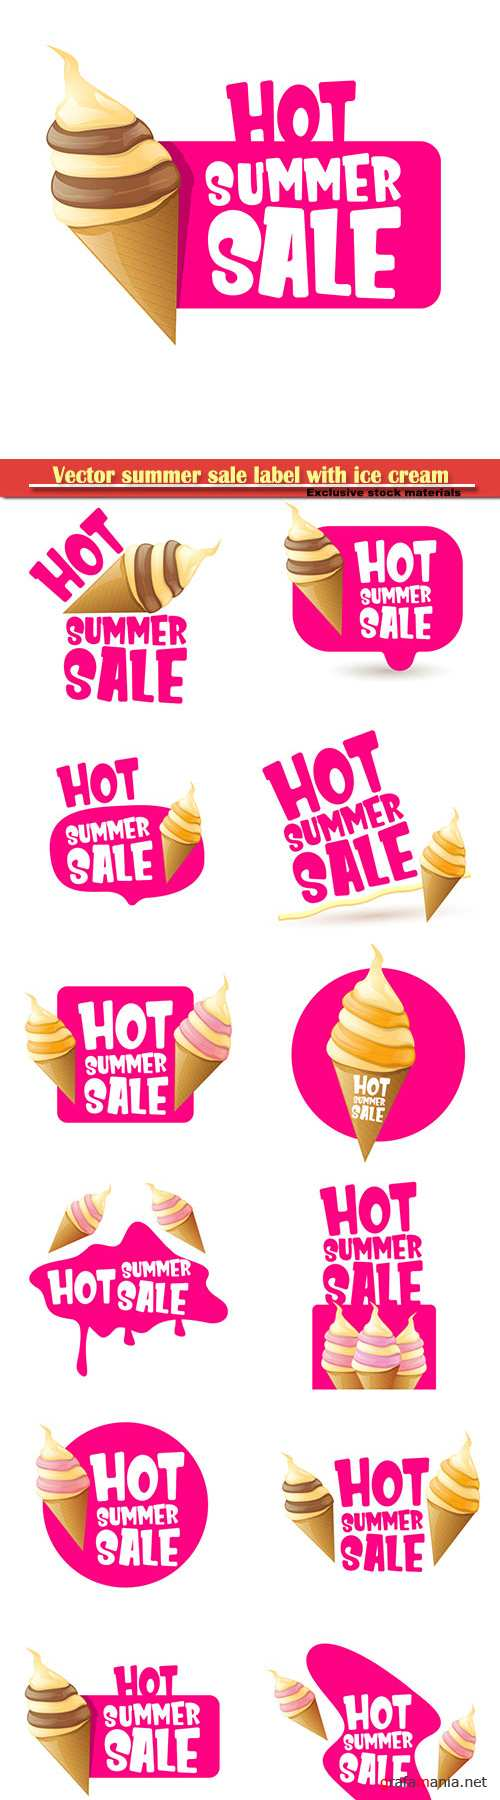 Vector summer sale label with melting ice cream